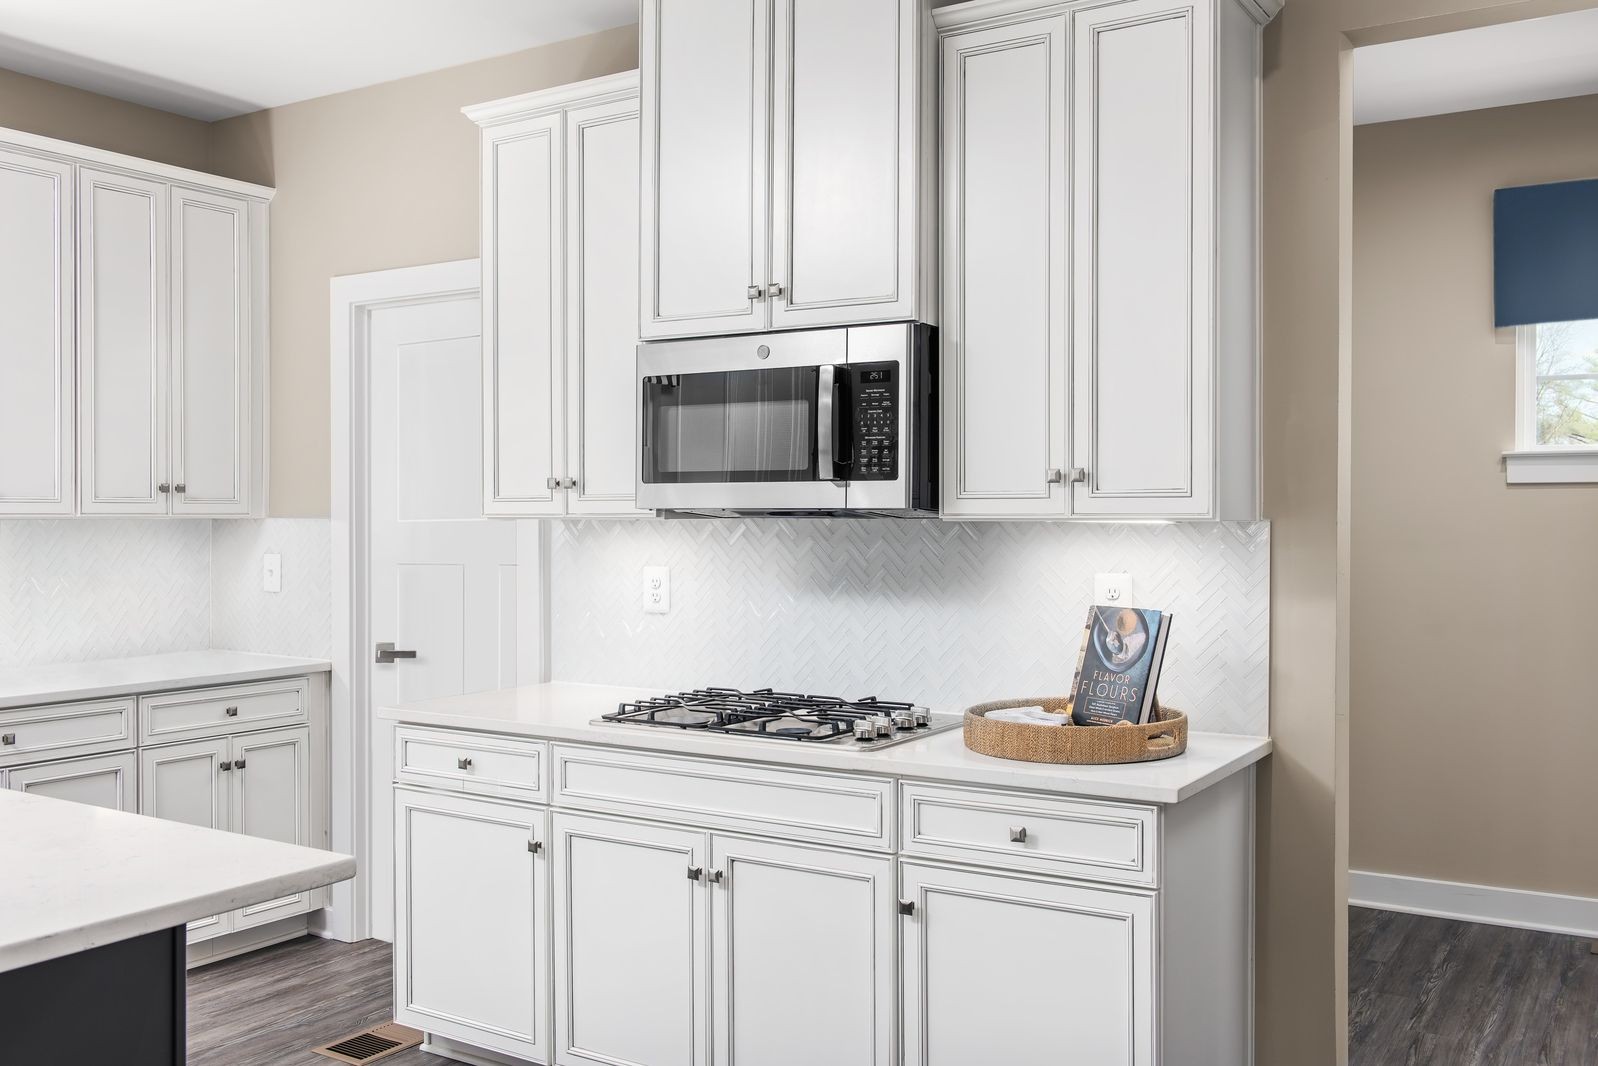 Kitchen featured in the Corsica By Ryan Homes in Washington, VA